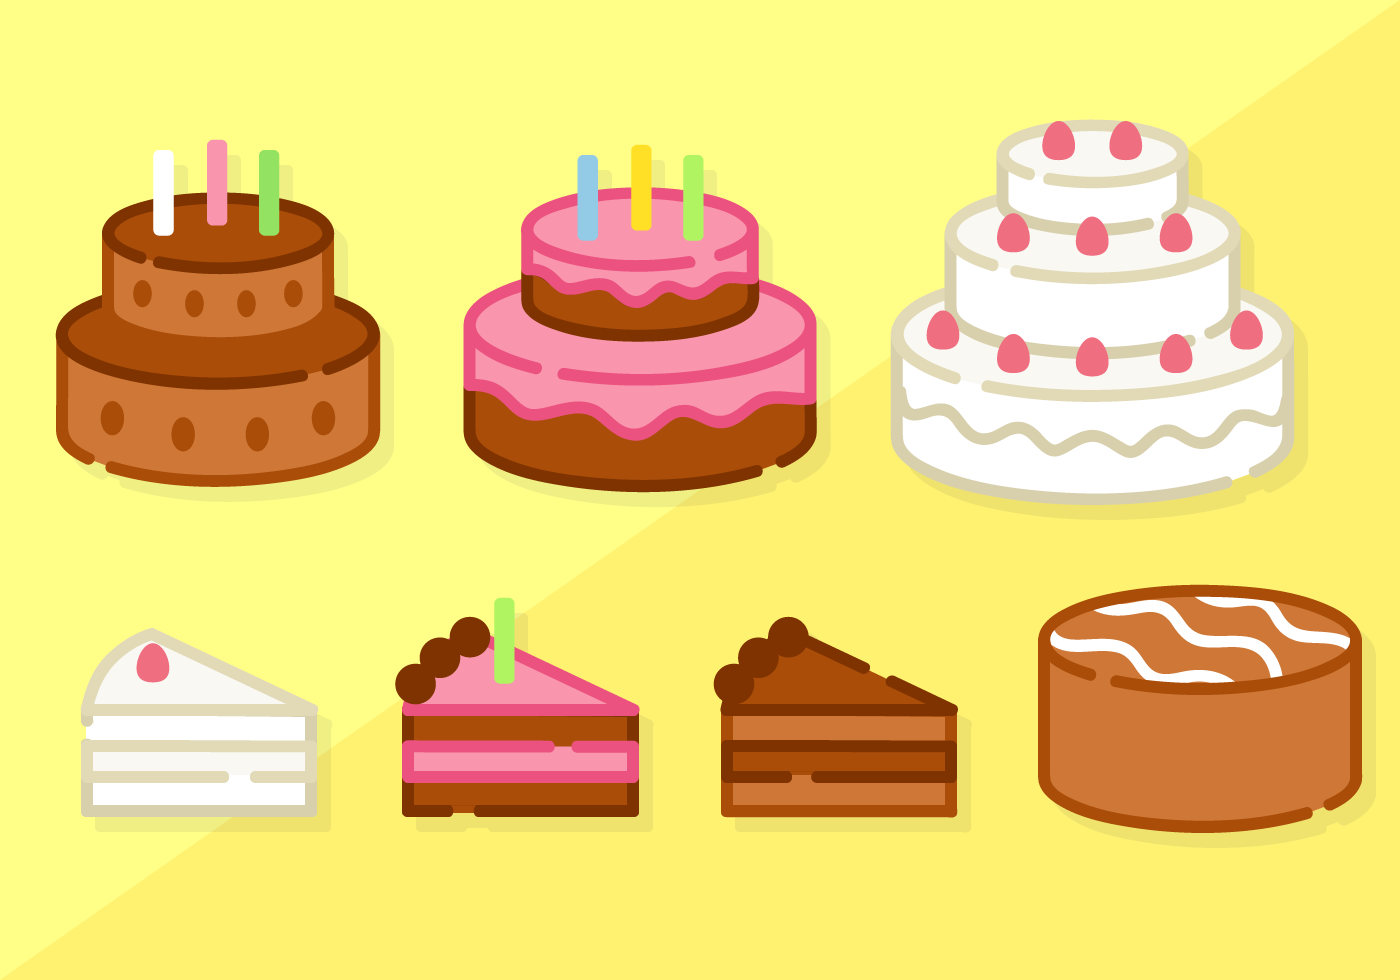 Cake Pictures Vector : Free Minimalist Cake Vector - Download Free Vector Art ...